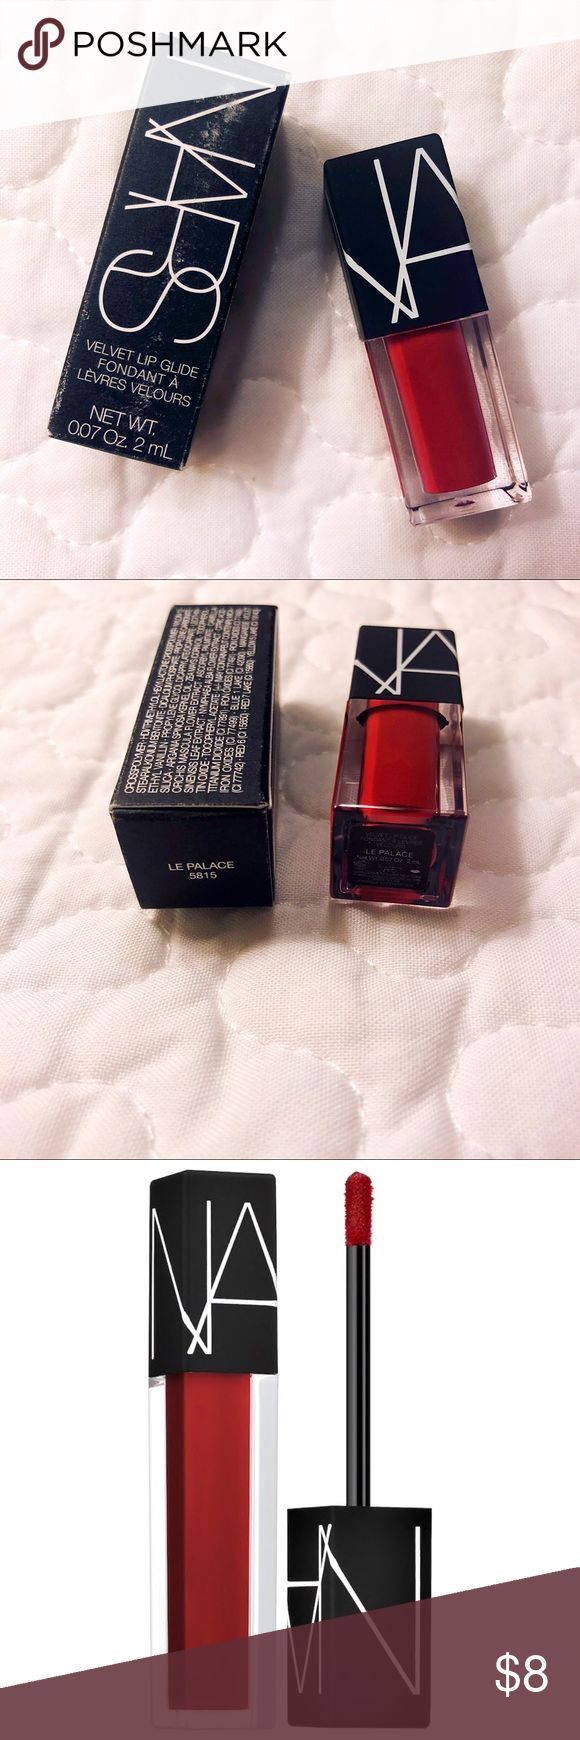 NWT! NARS VELET LIP GLIDE in LE PALACE 5815 NWT! BRAND NEW! NEVER USED! COLOR: LE PALACE - deep cherry red EXP. 01/01/2019 NARS Makeup Lip Balm & Gloss